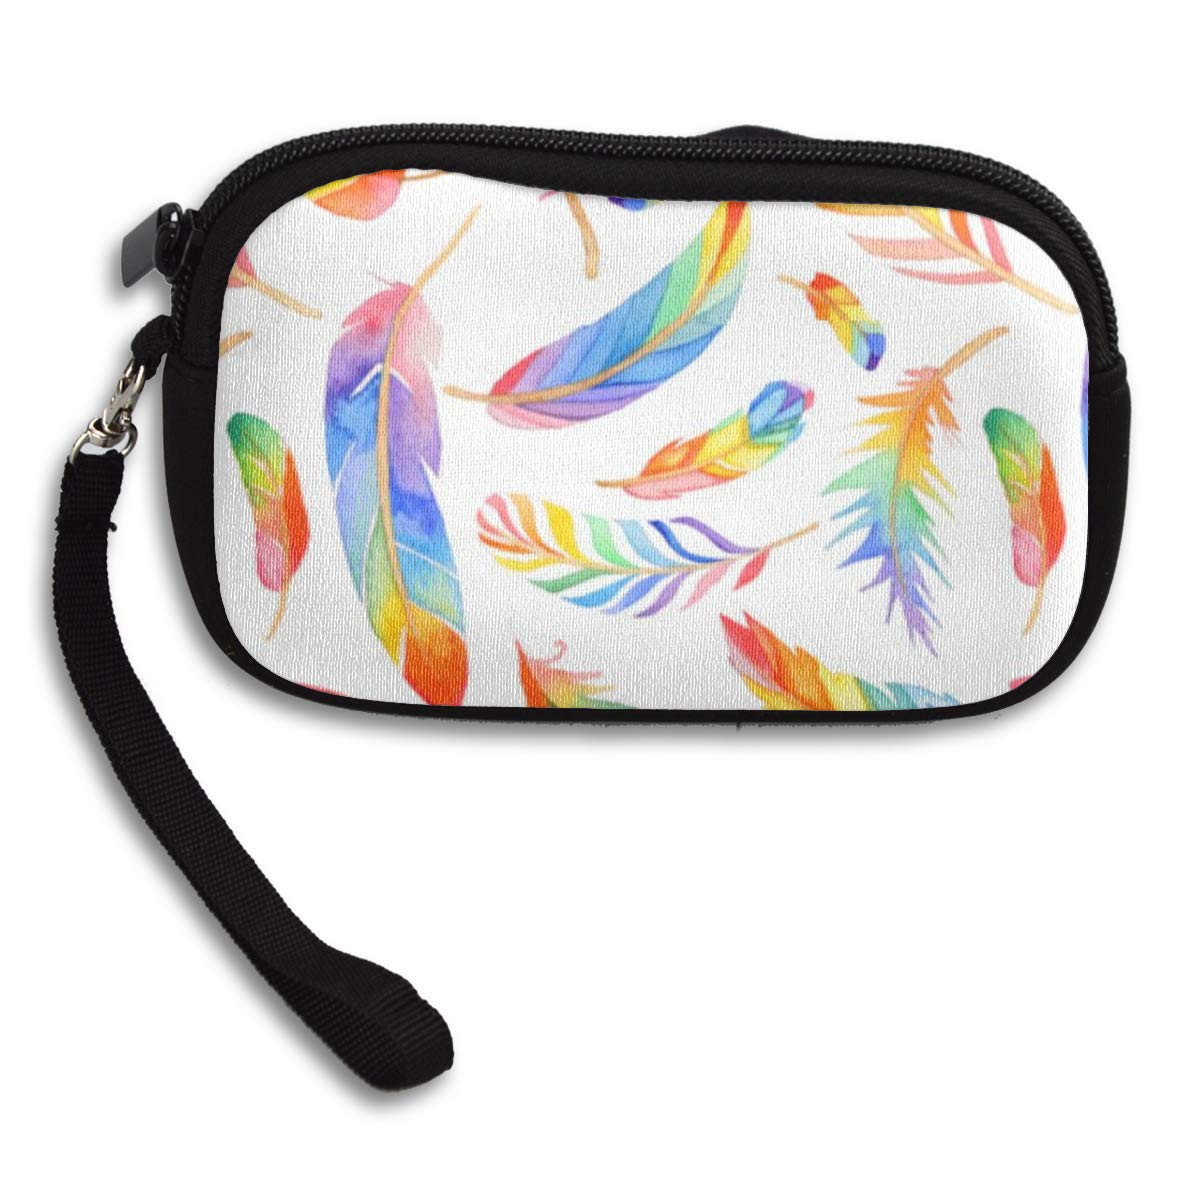 Coin Purse Rainbow Feathers wallet change Purse with Zipper Wallet Coin Pouch Mini Size Cash Phone Holder